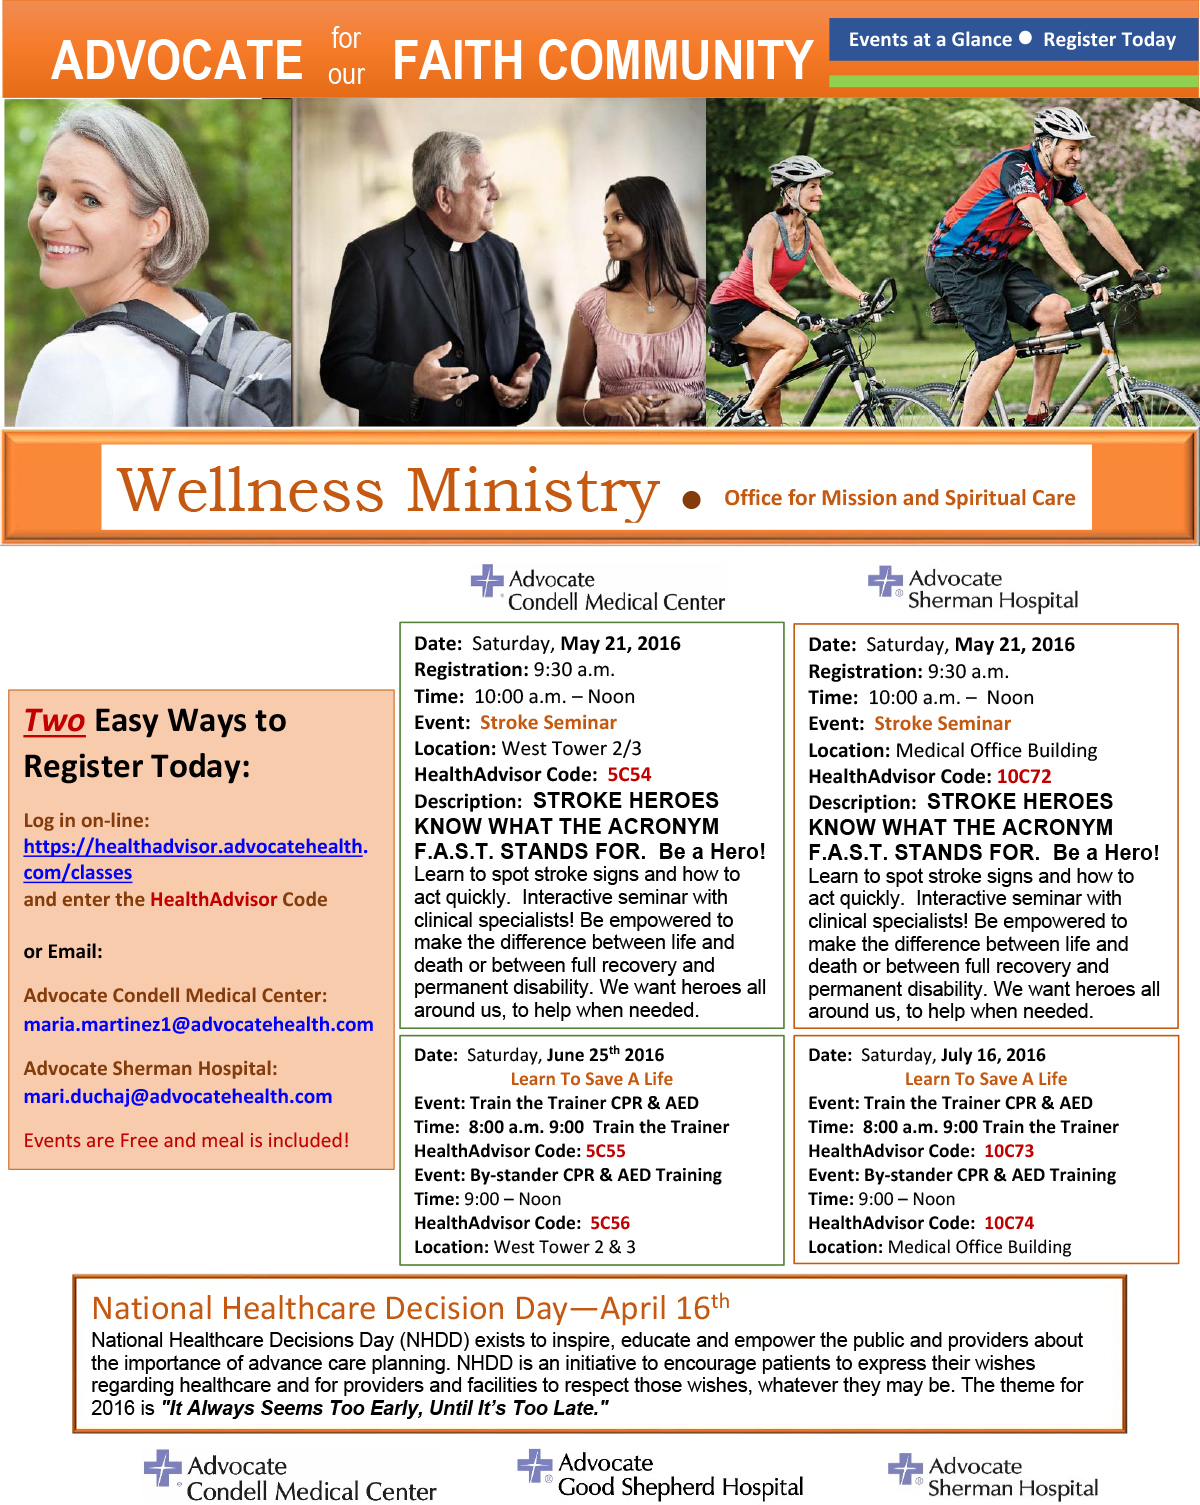 Events at a glance v3 kjylpn